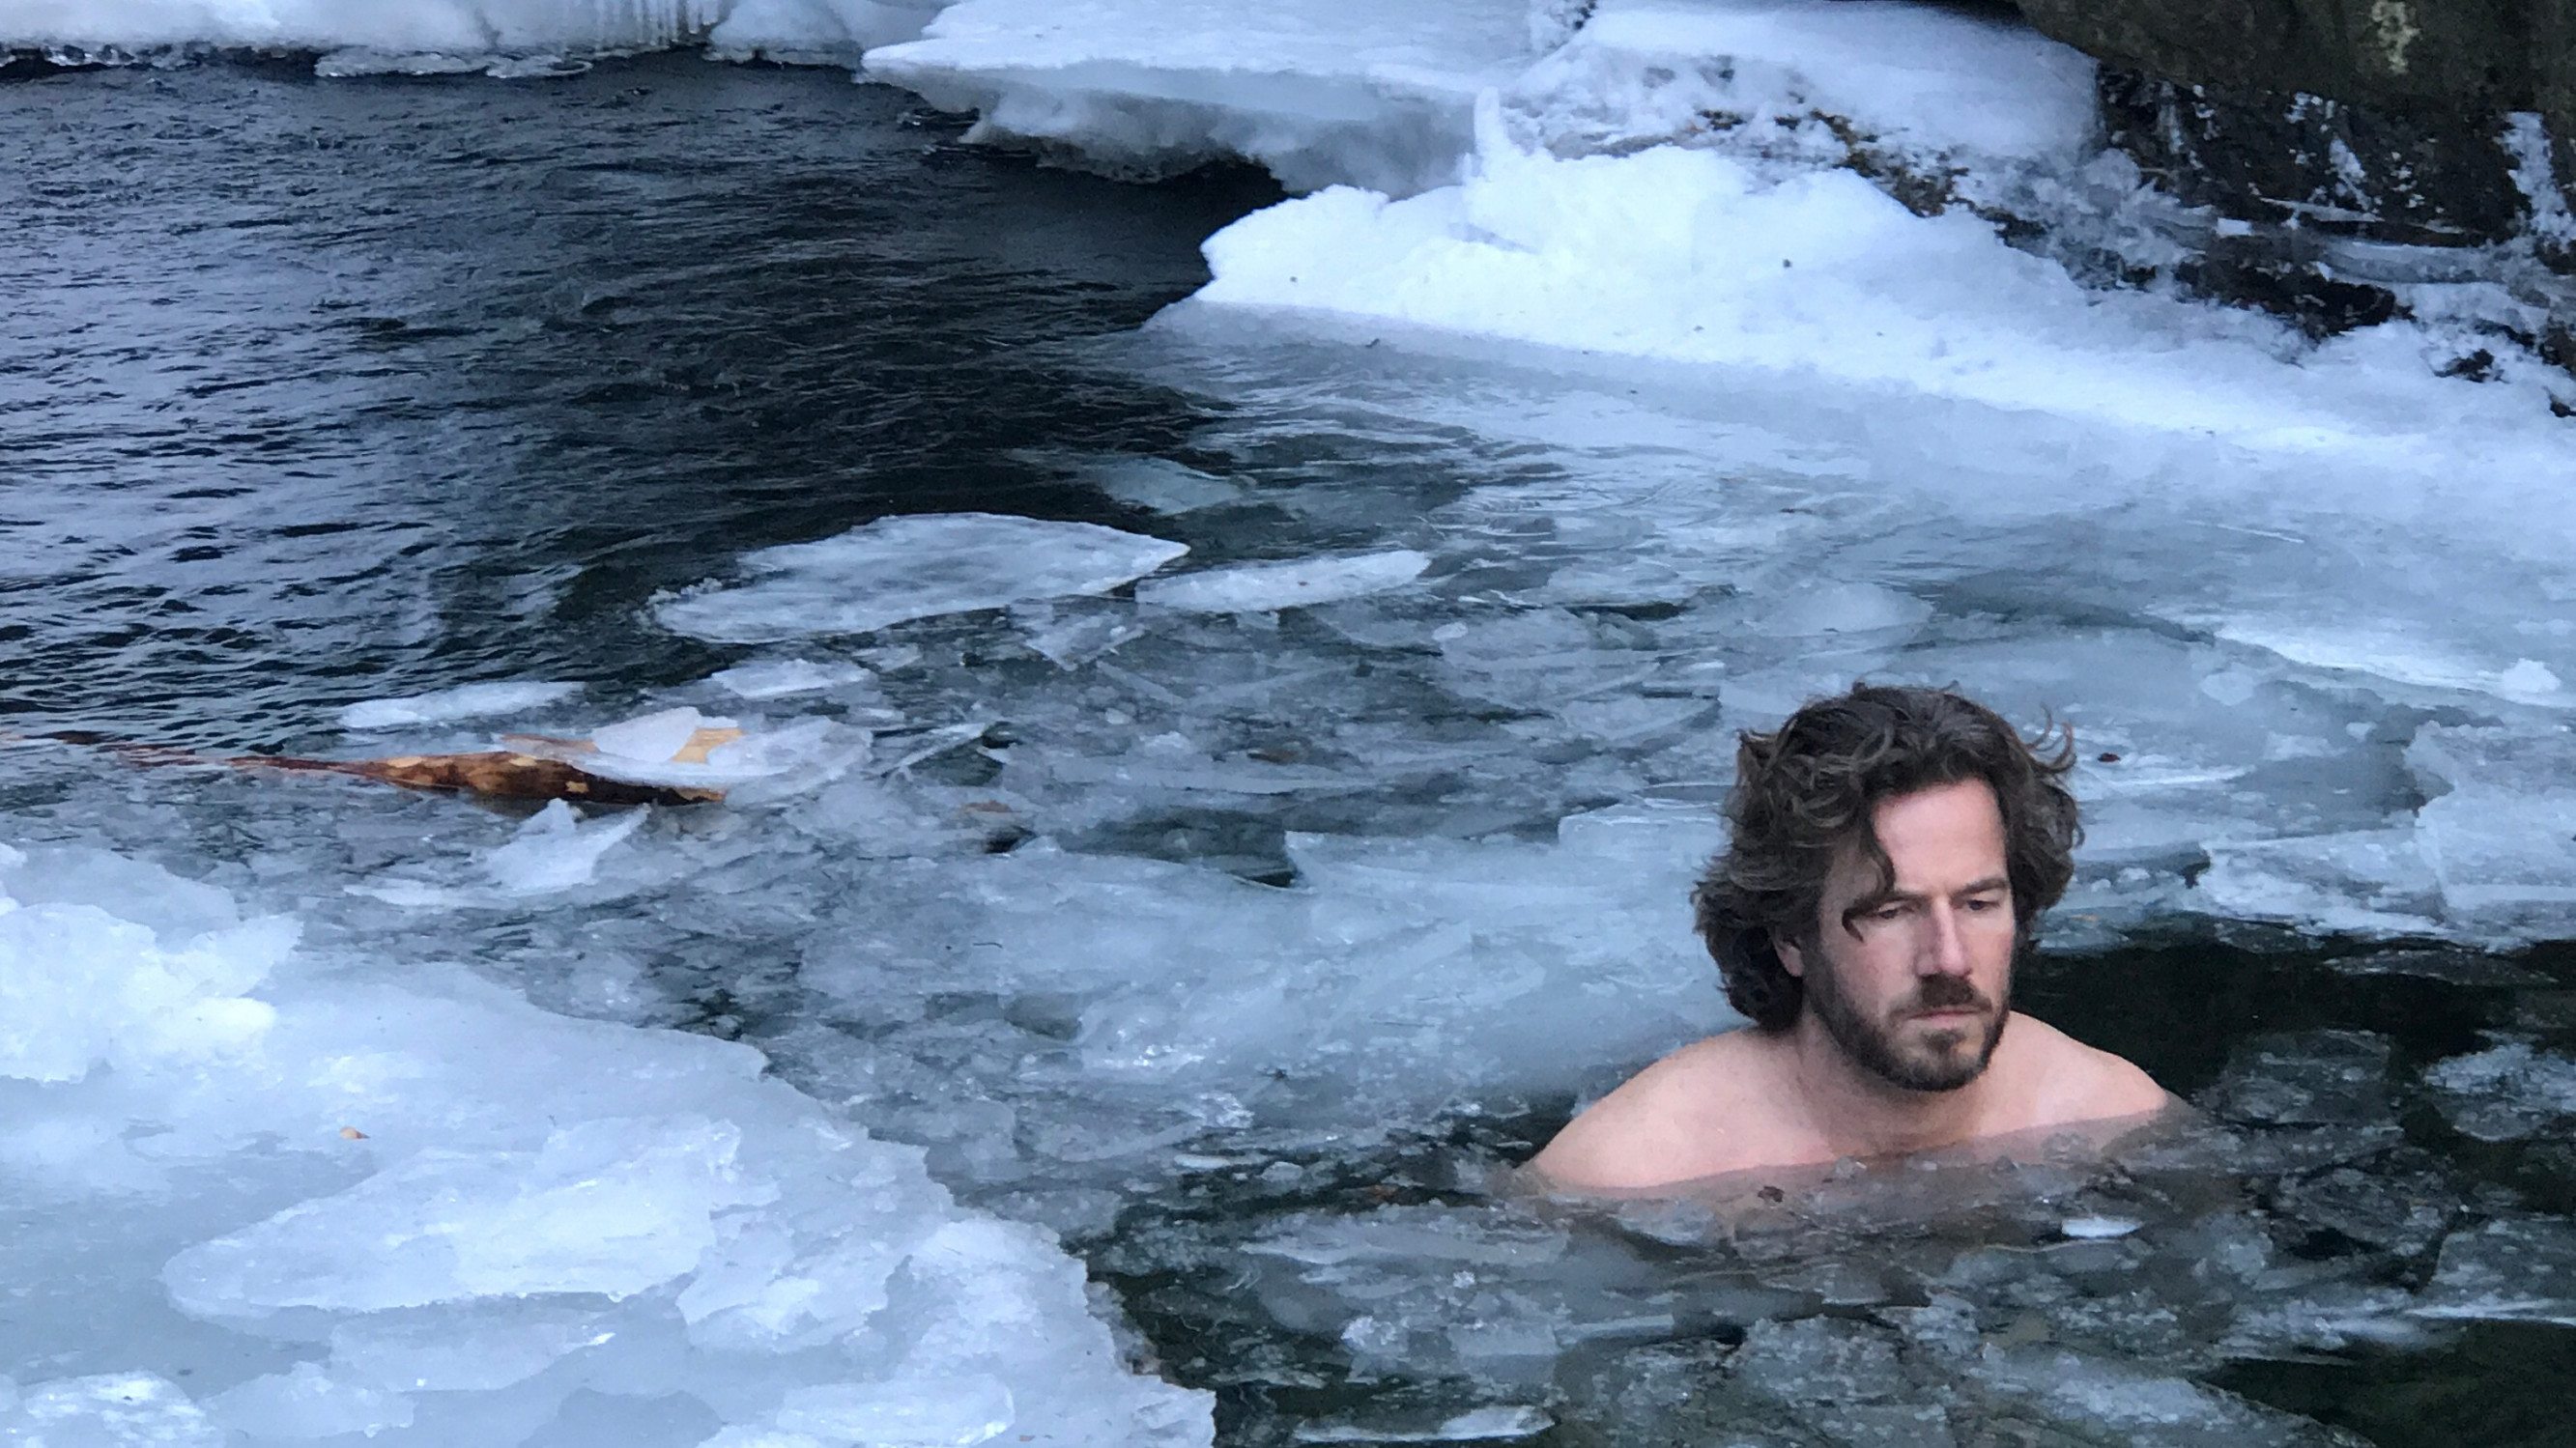 Image 5 of 15 - Experience the Wim Hof Method to get an impression of  at